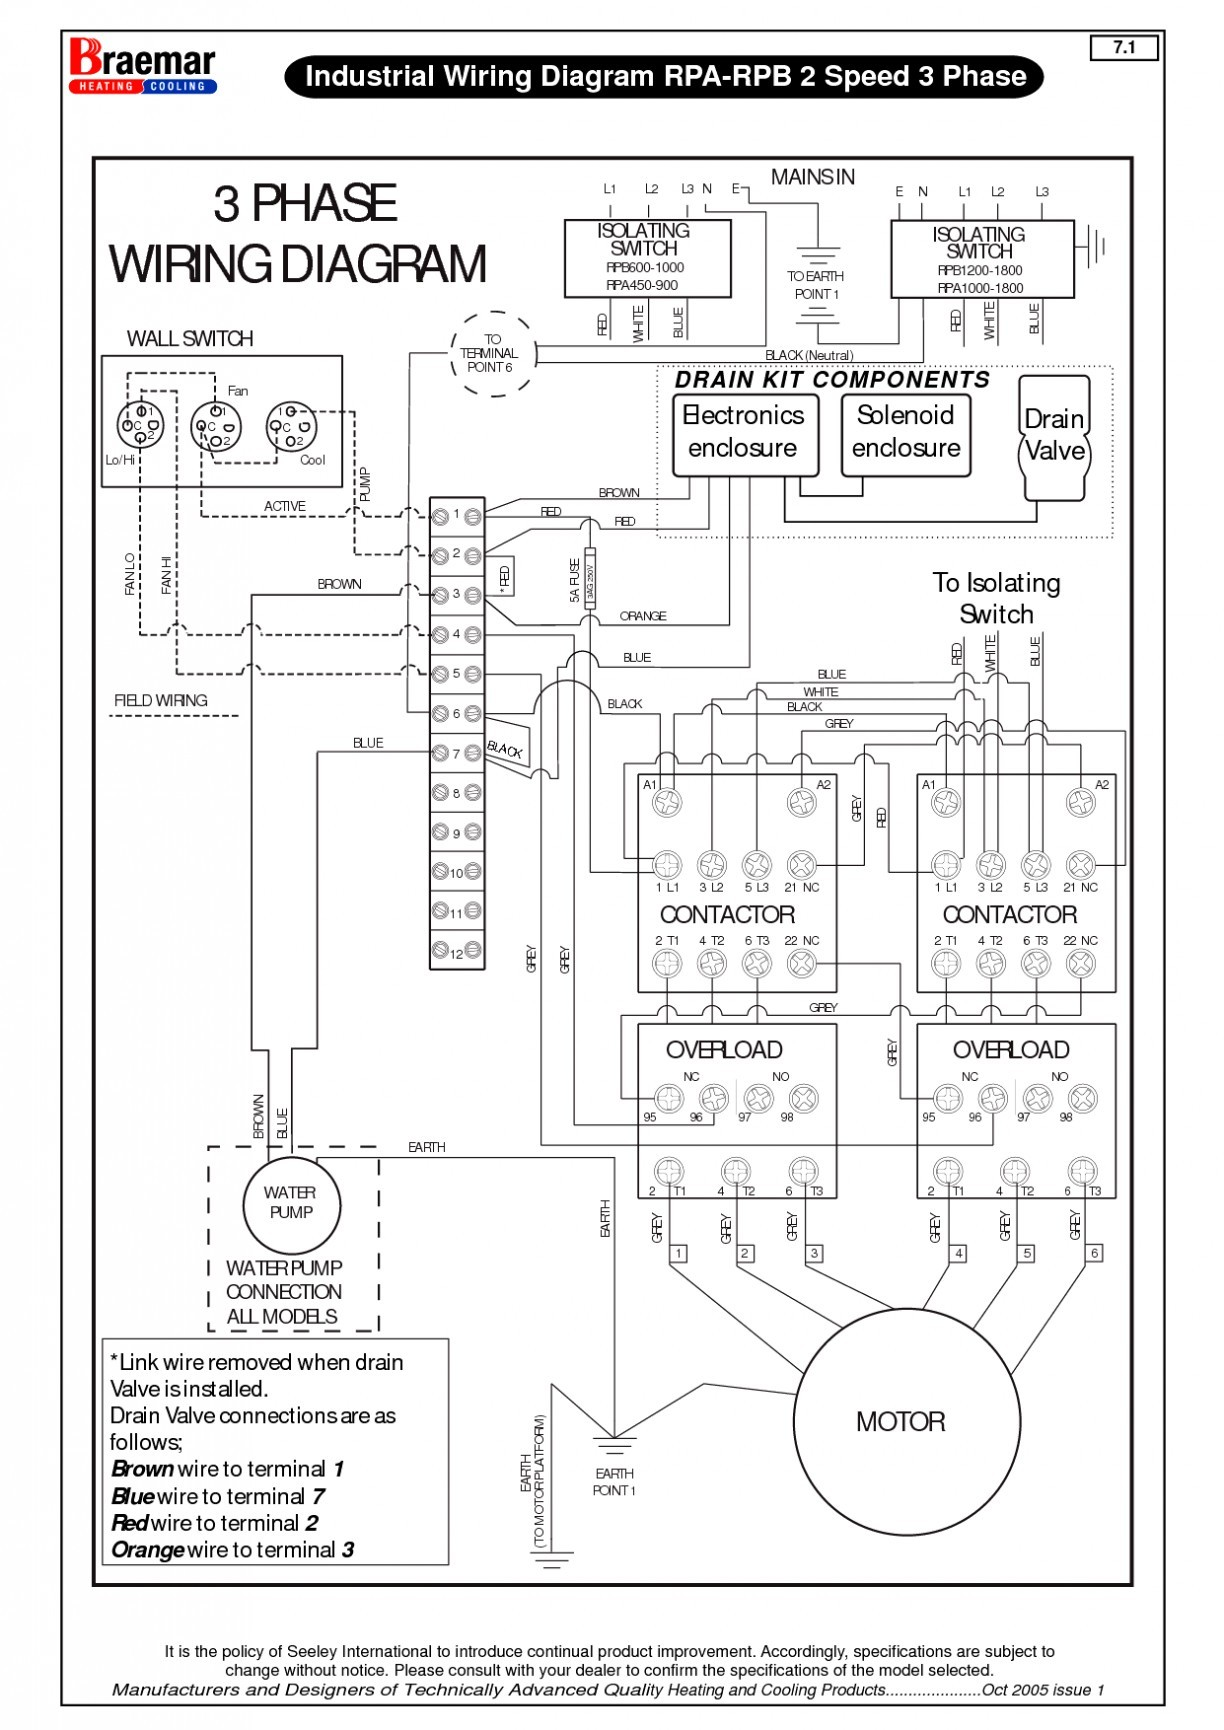 trane vfd wiring diagrams danfoss vfd wiring diagrams